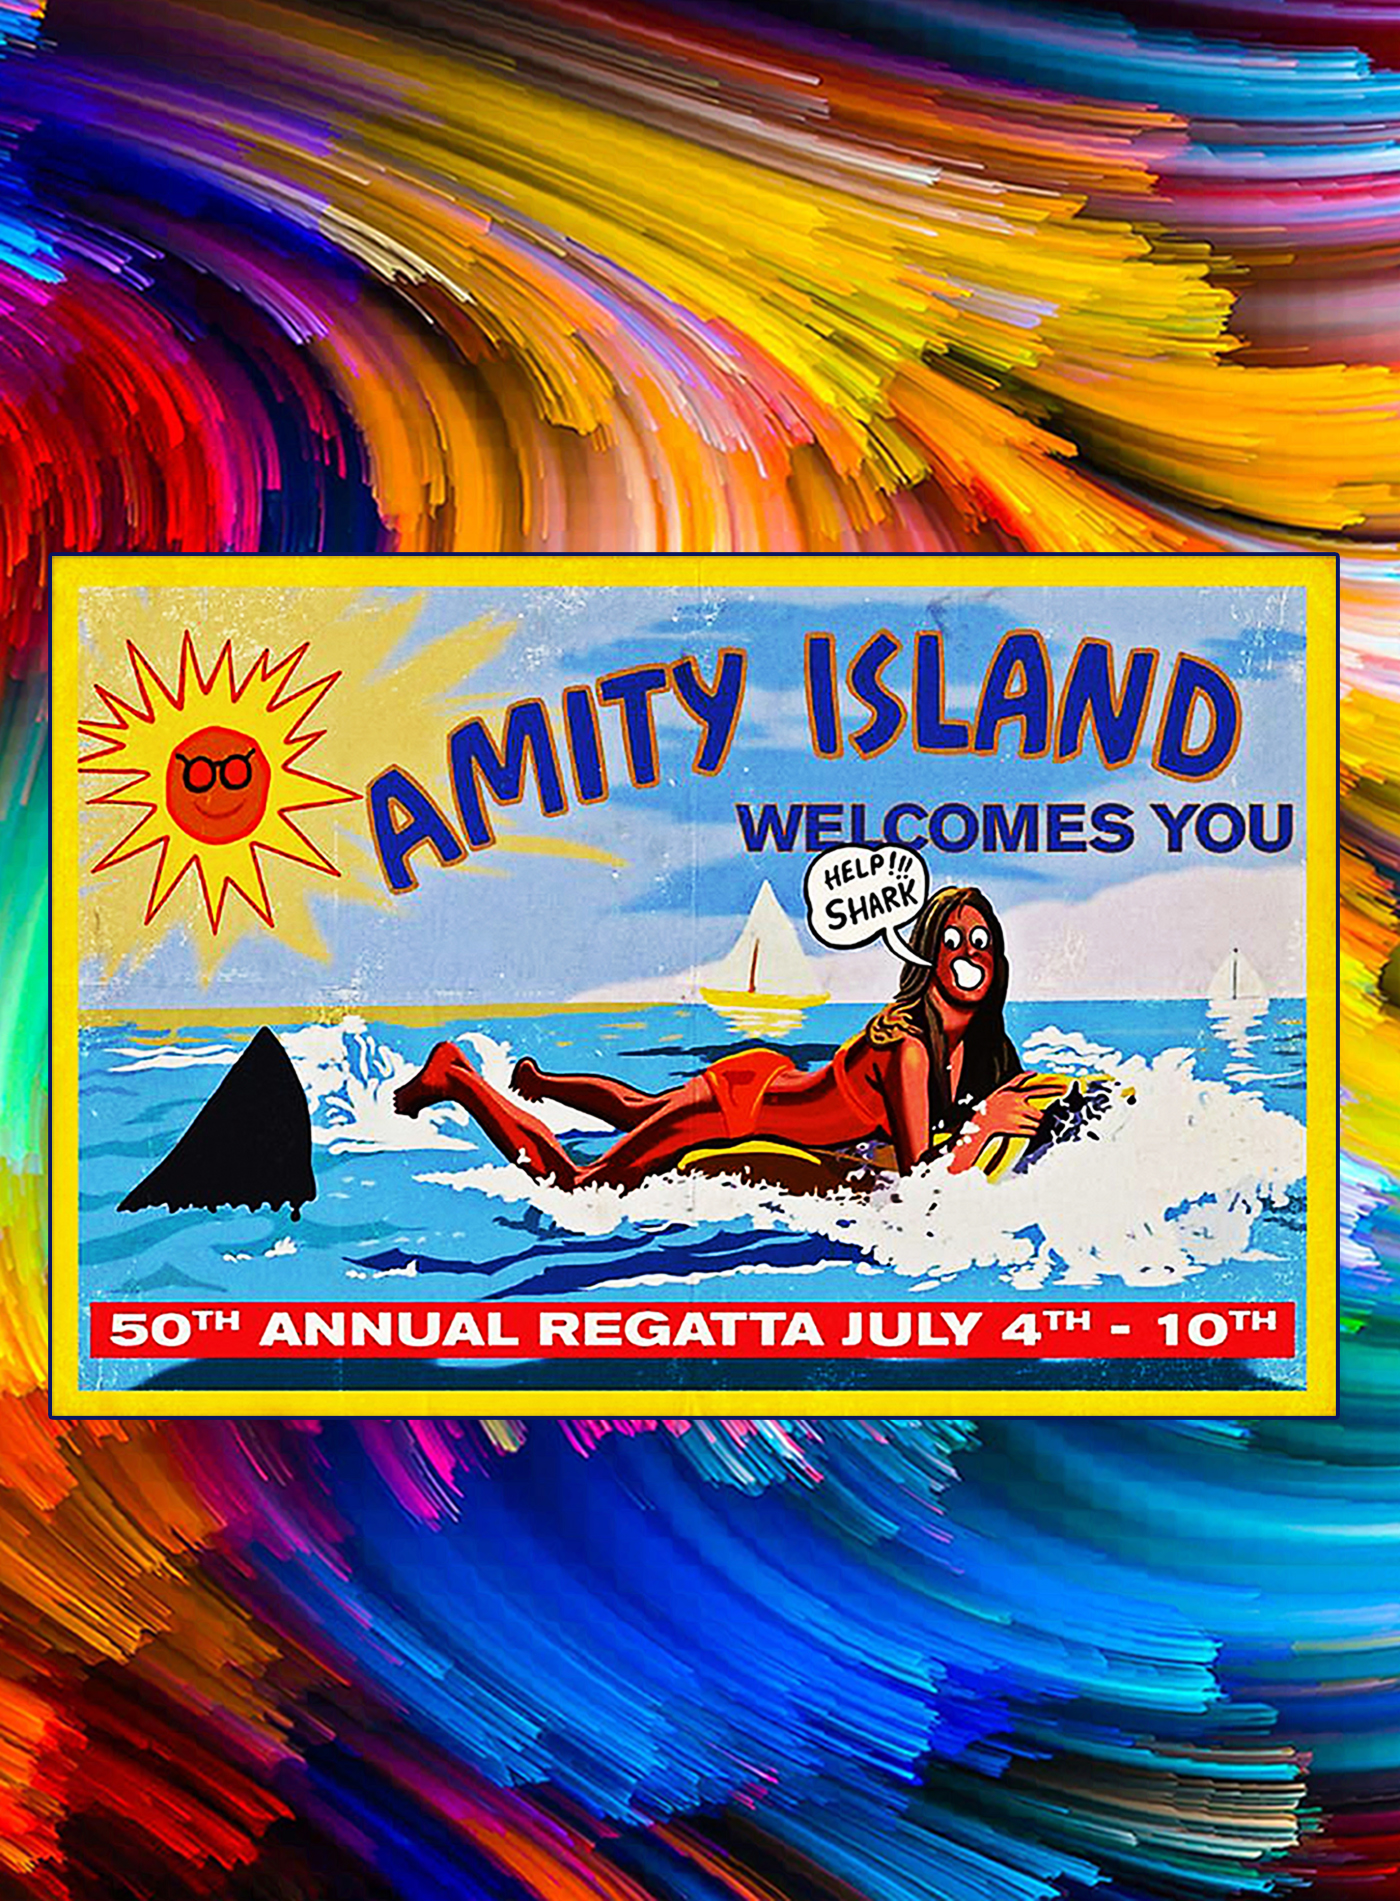 Amity island welcomes you 50th annual regatta july 4th 10th poster - A1